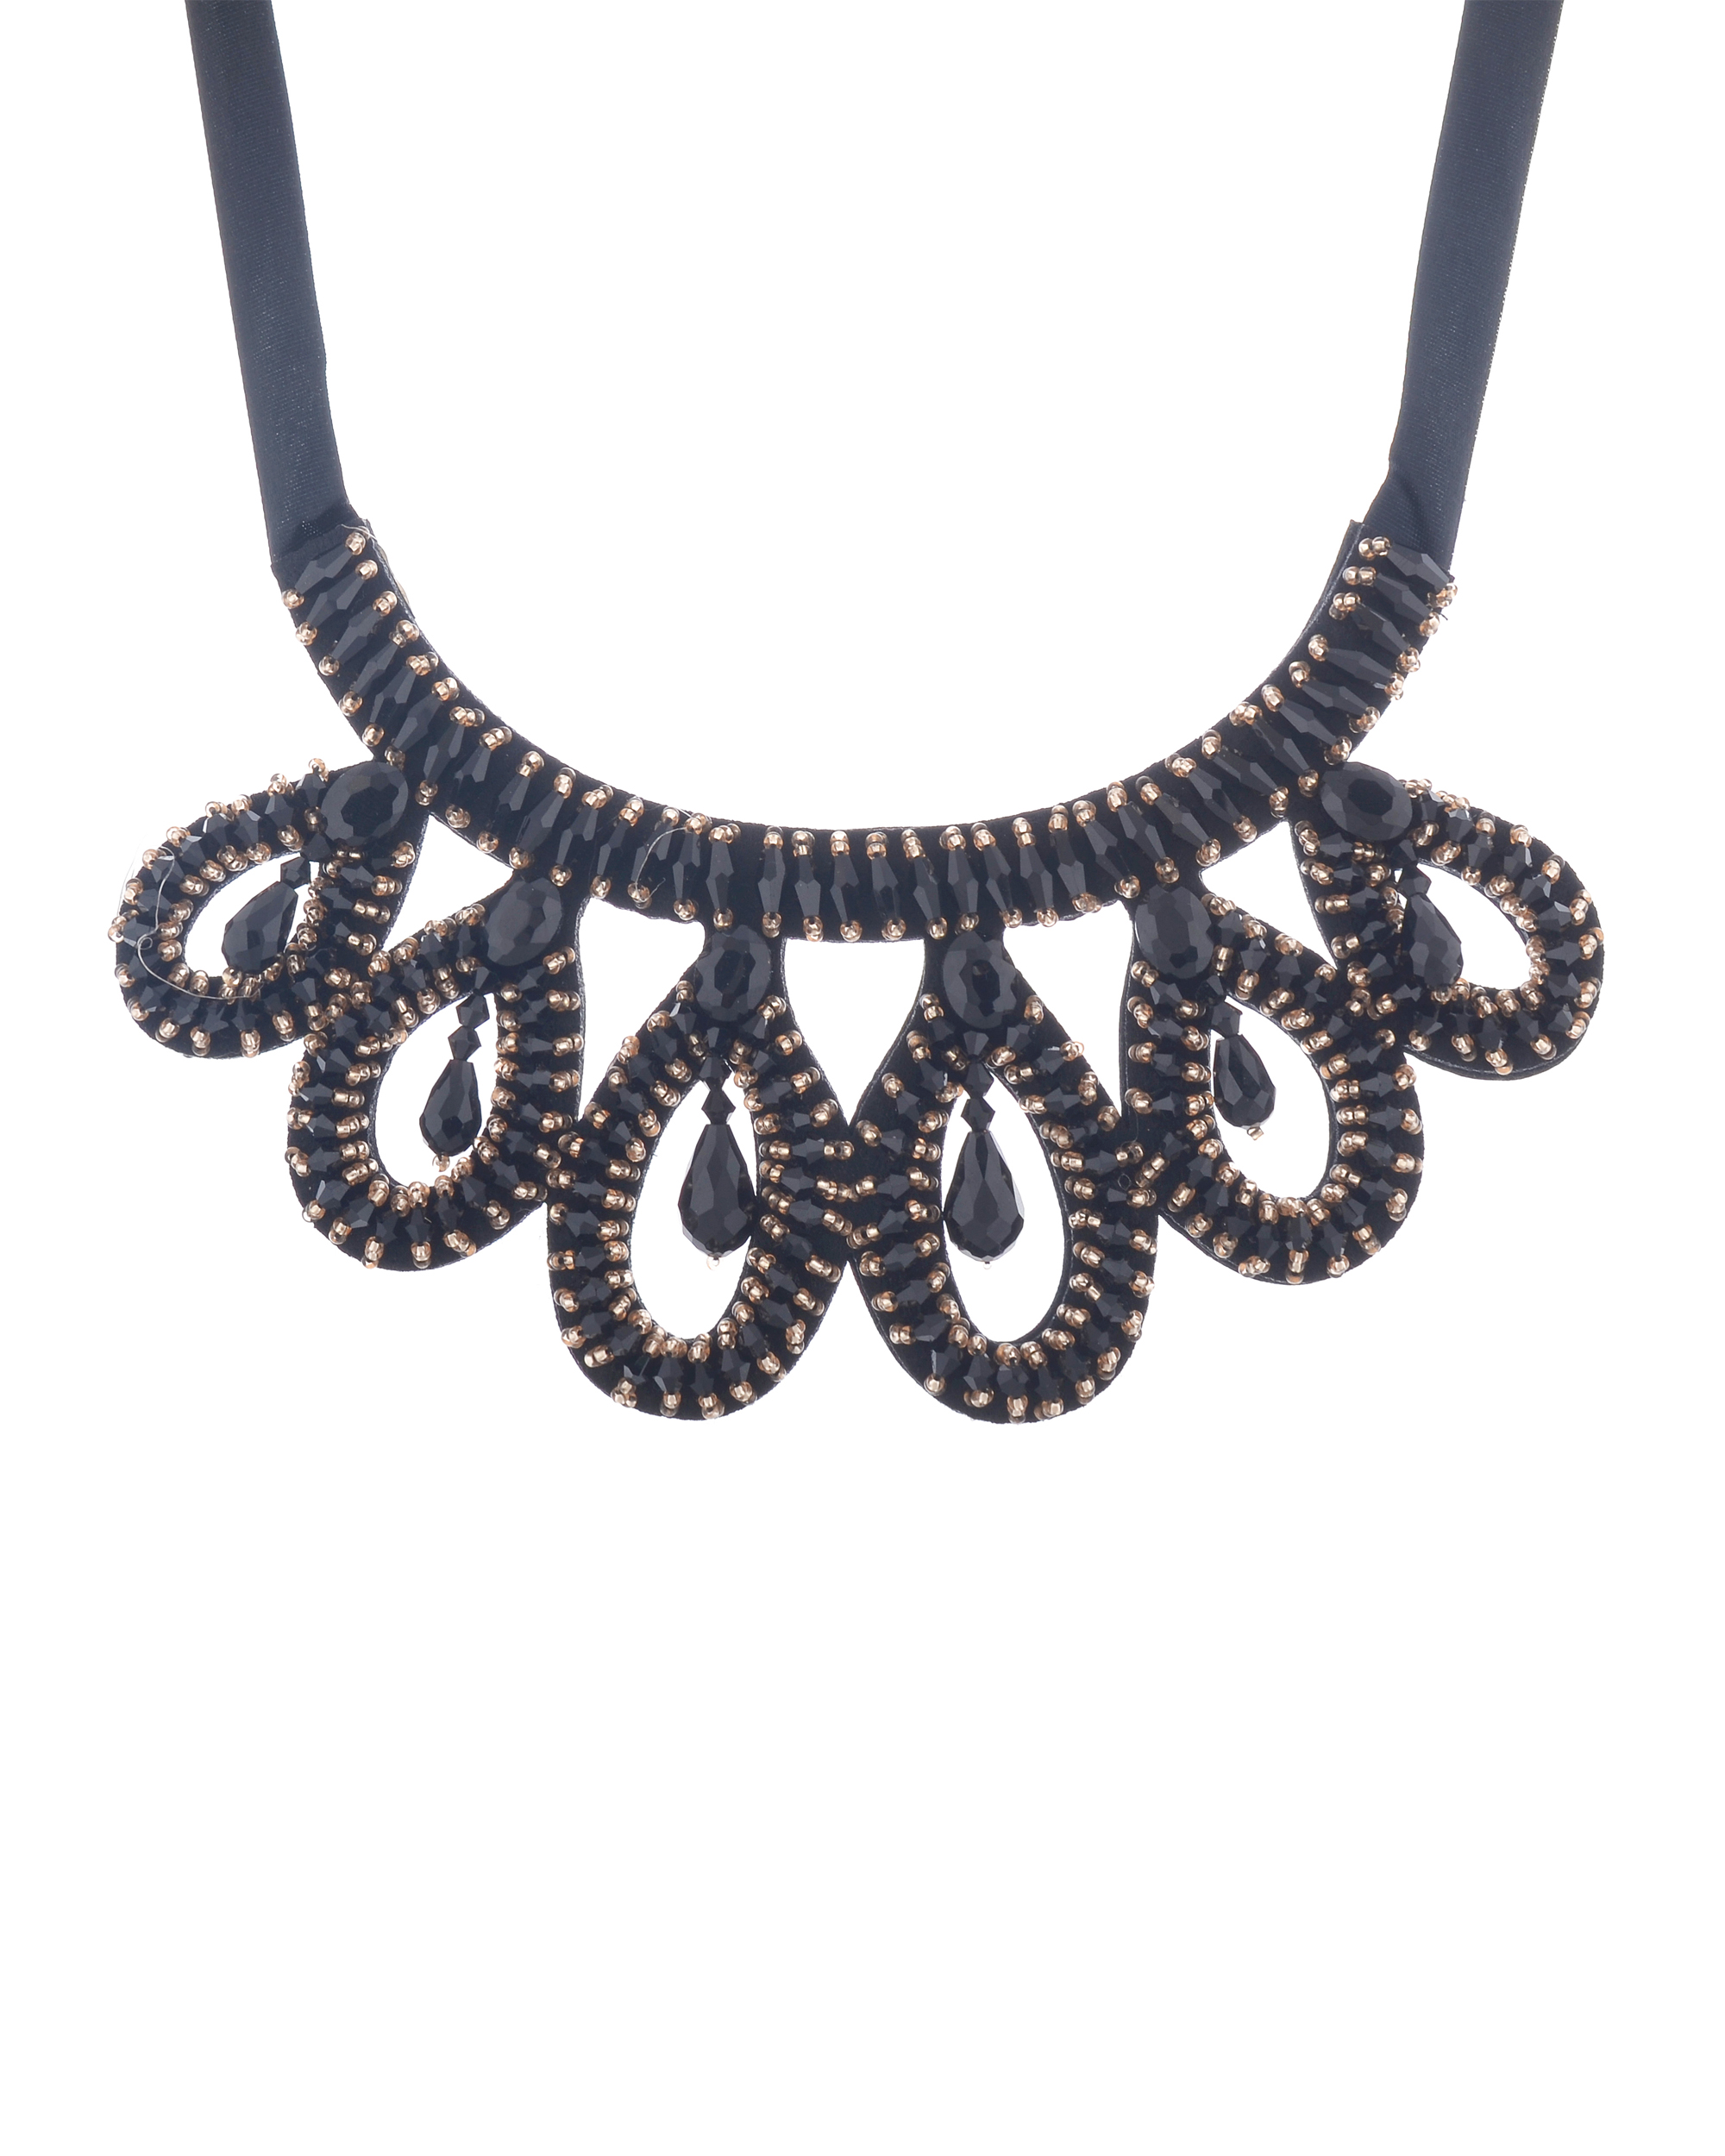 Black Tie Around Choker Neckpiece